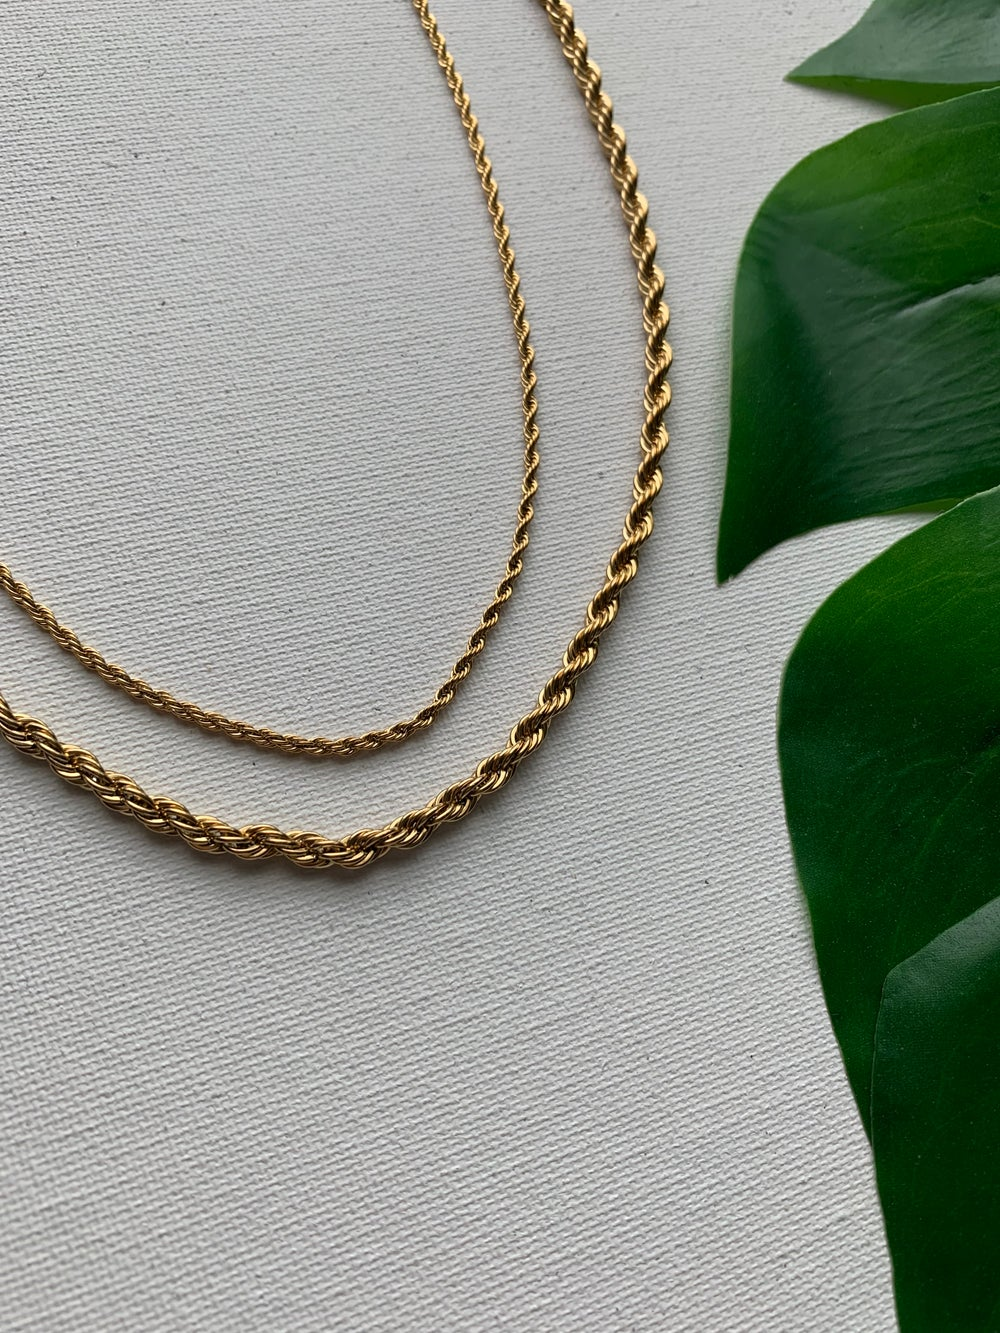 Image of SAY WHAT • Rope Necklace   Stainless Steel